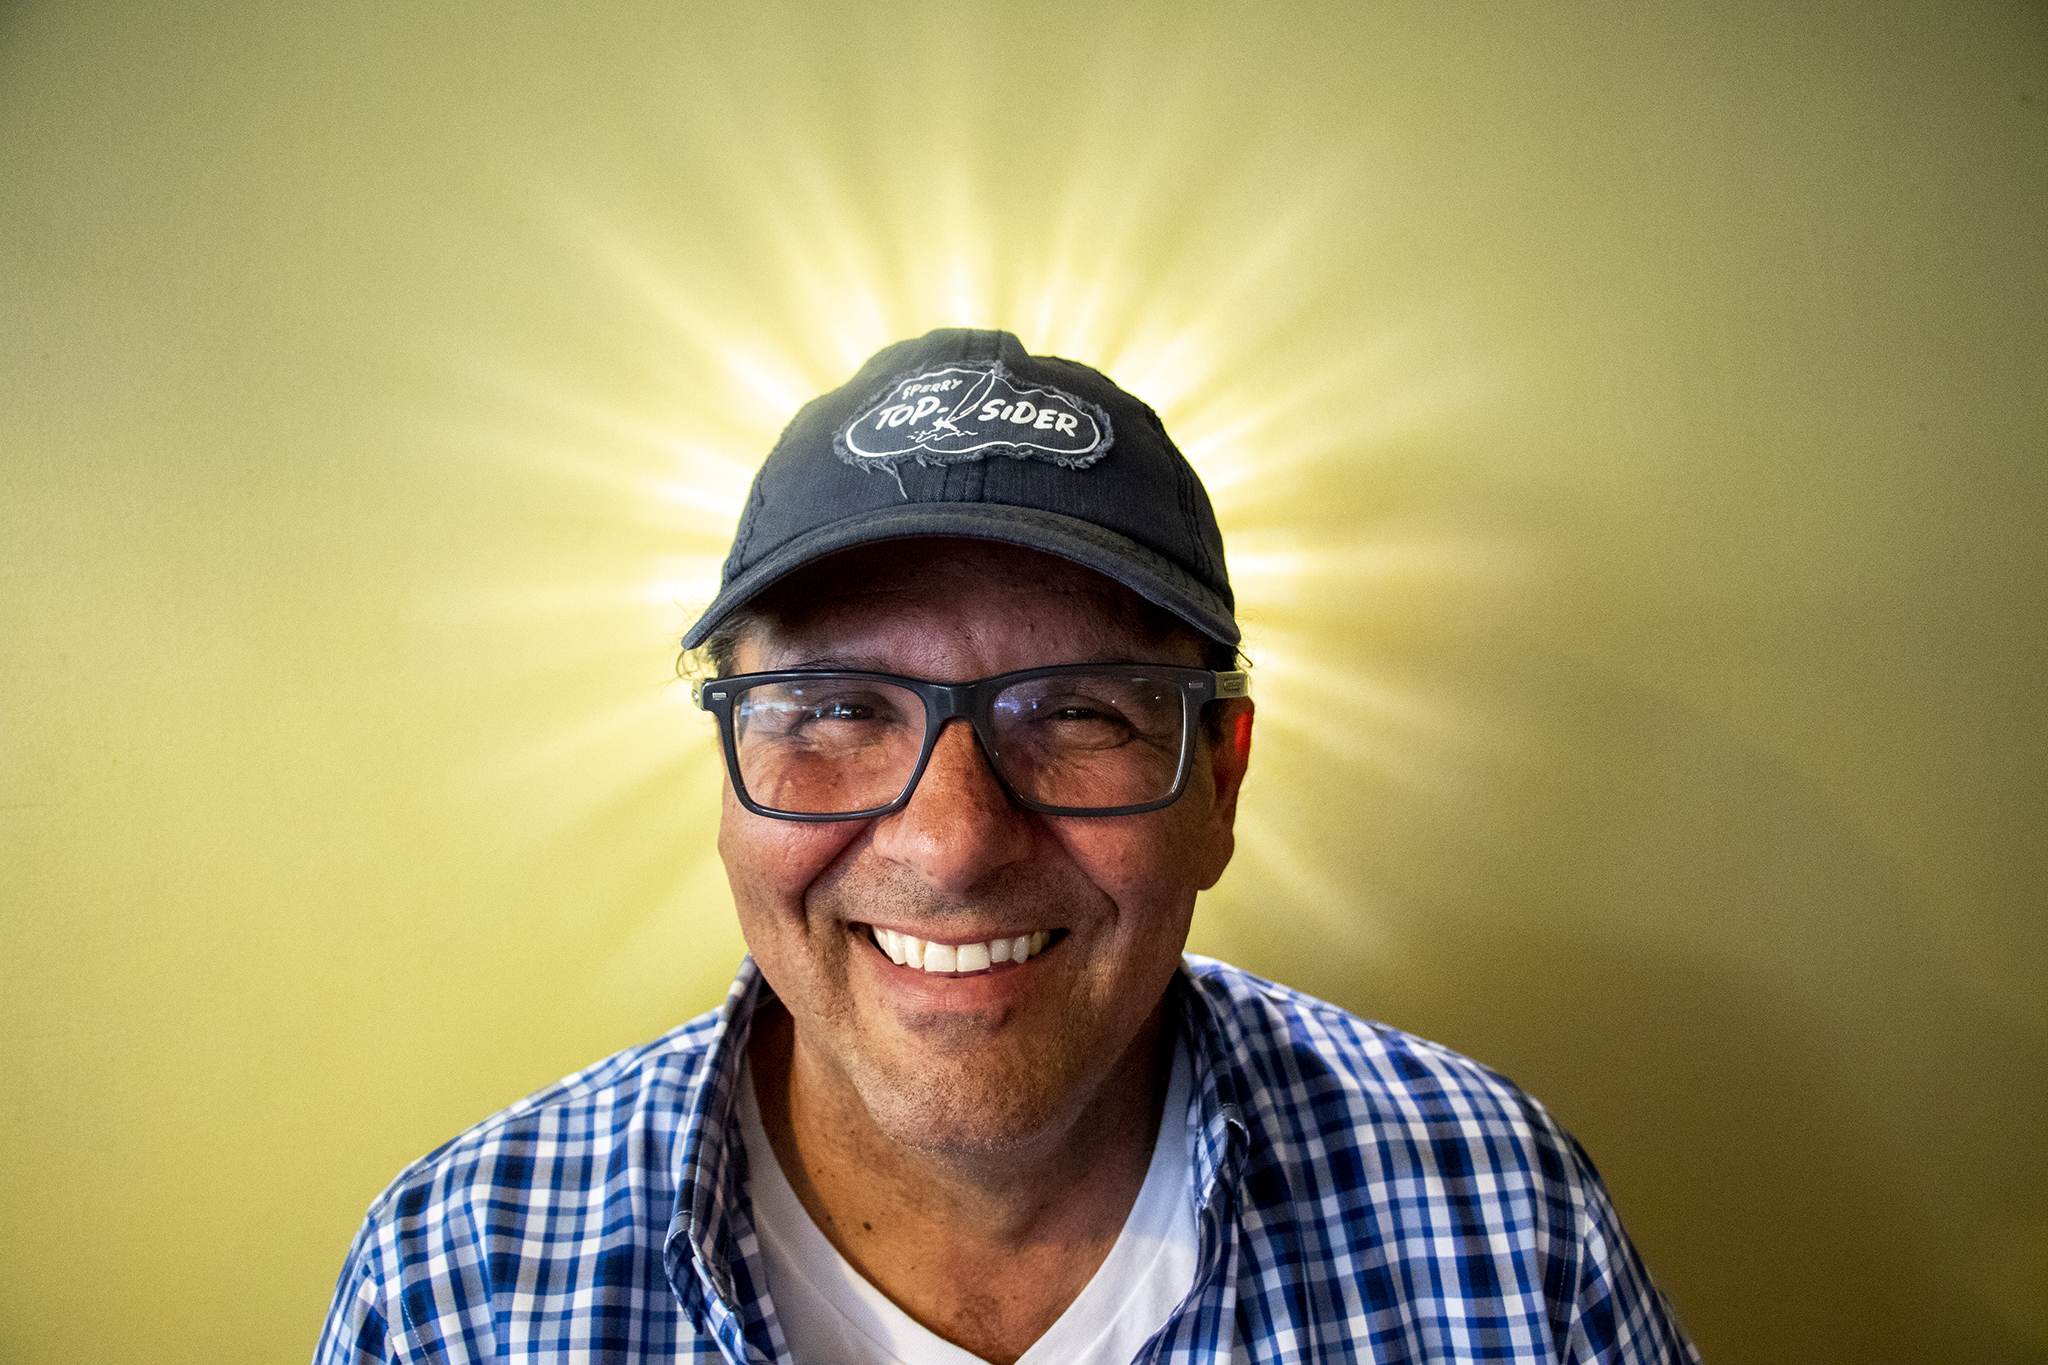 Tom Messina poses for a portrait inside Tom's Diner on East Colfax Avenue, North Capitol Hill, Aug. 15, 2019.